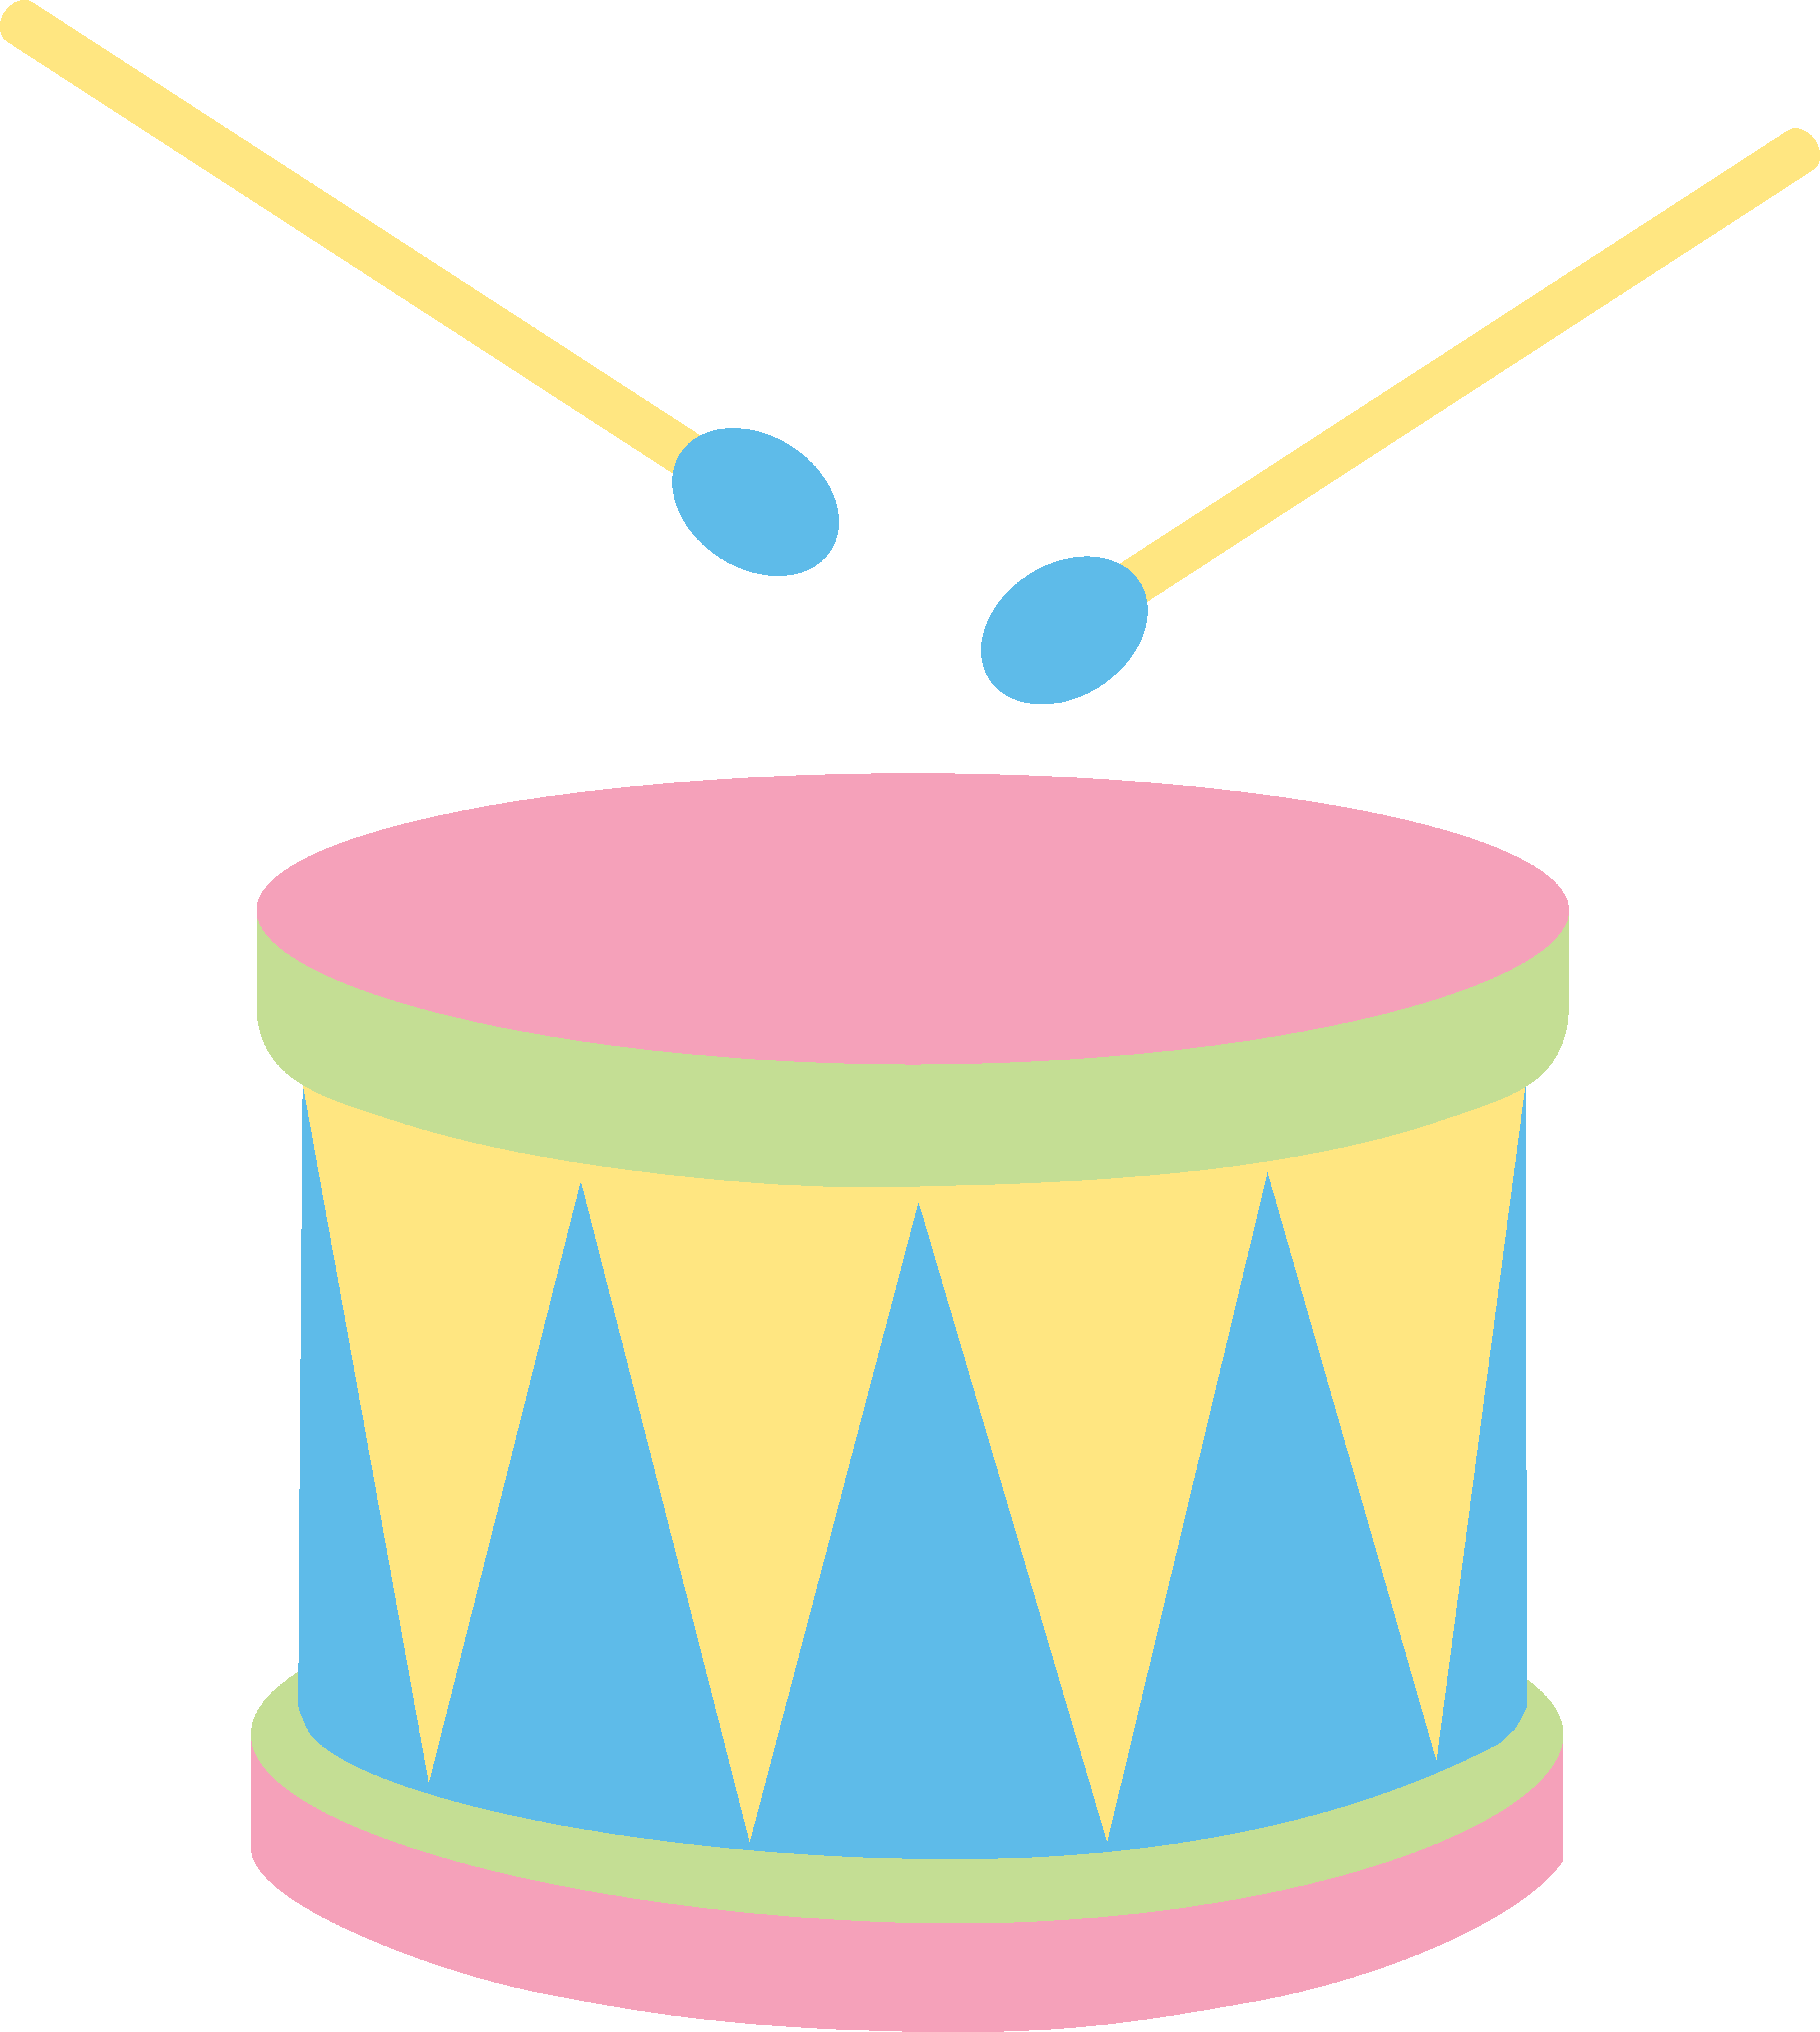 Pastel colored drum musical. Drums clipart pink